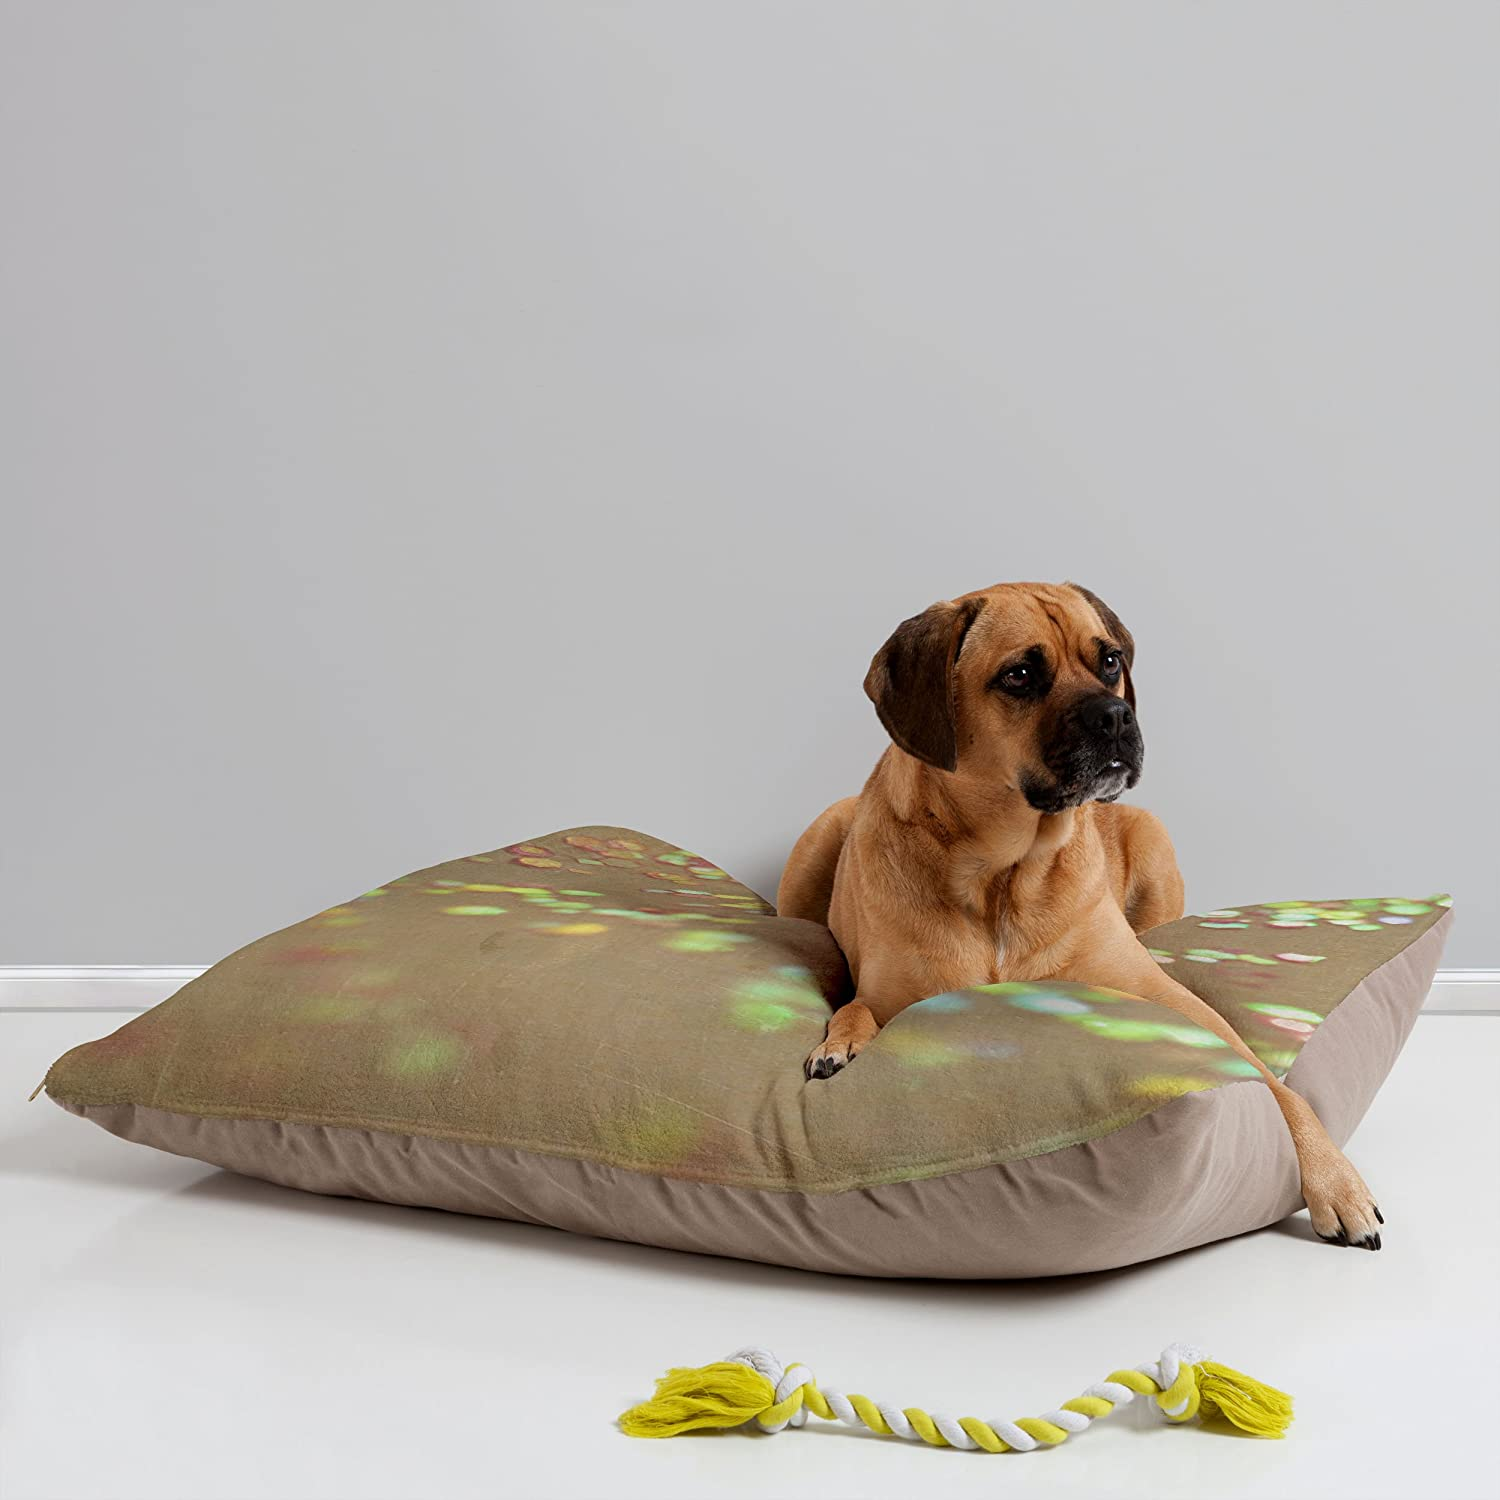 Deny Designs Lisa Argyropoulos Aquios Pet Bed